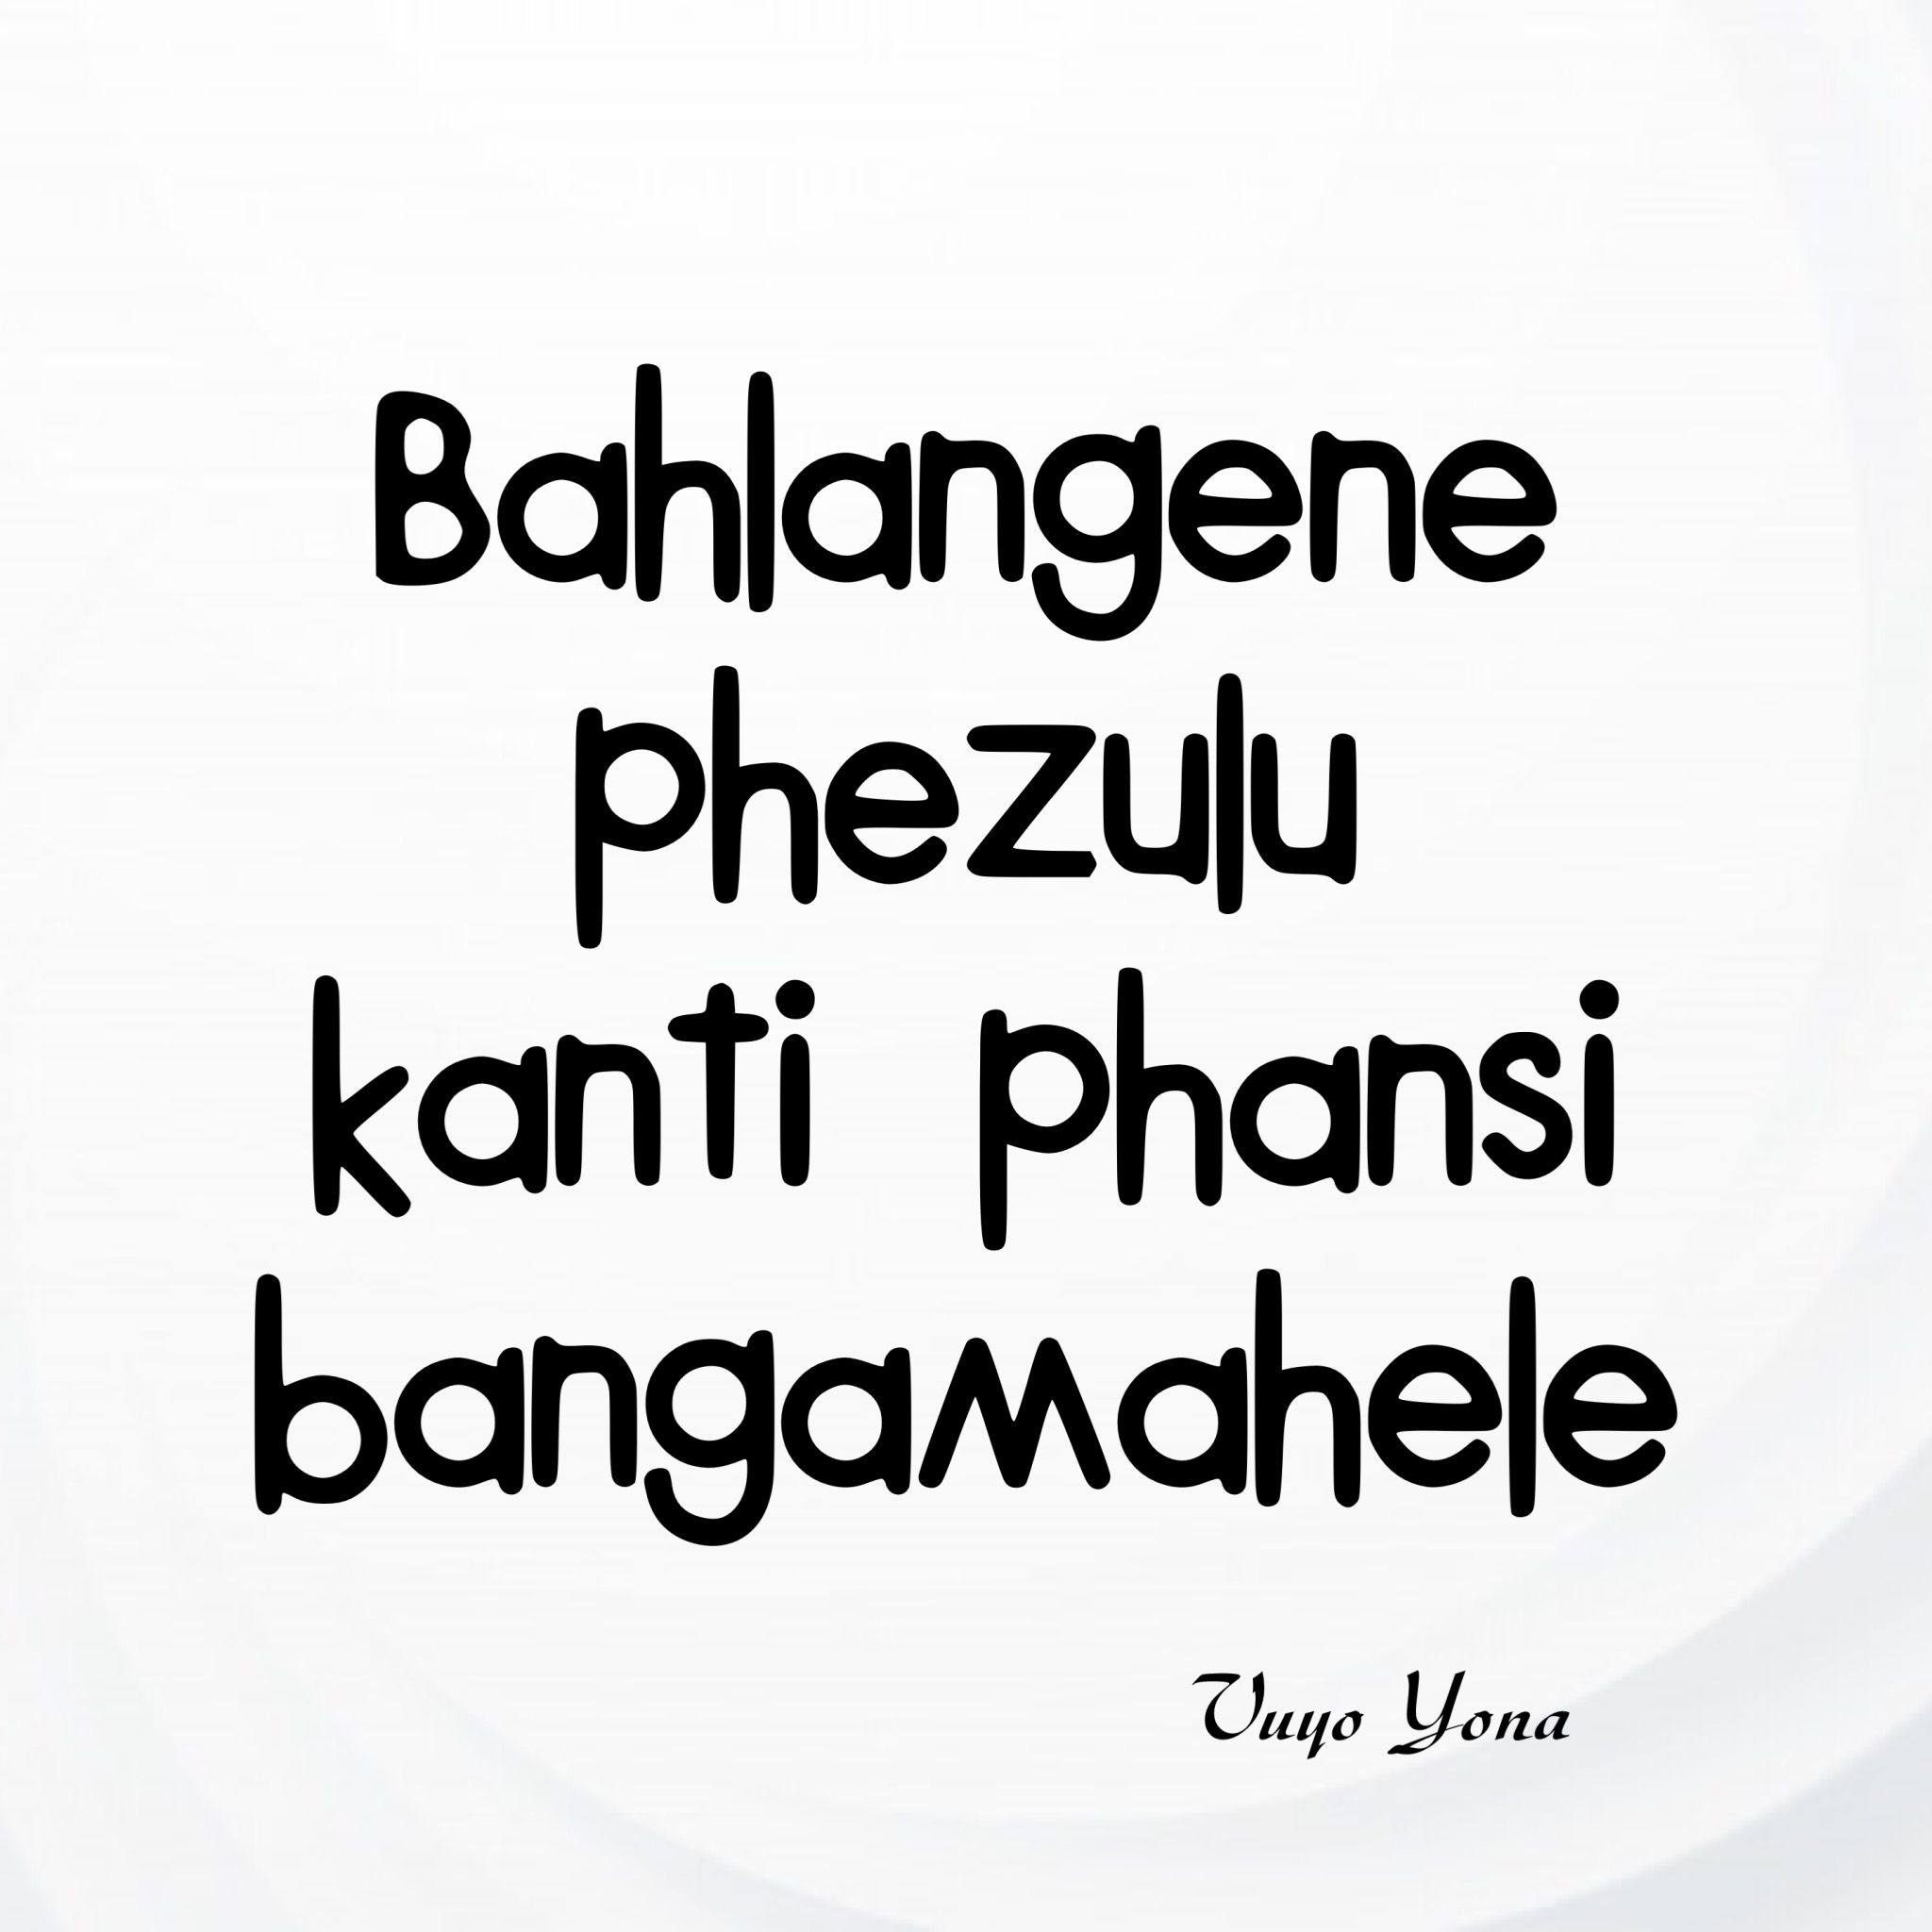 3 Zulu quote ideas  zulu, proverbs, quotes